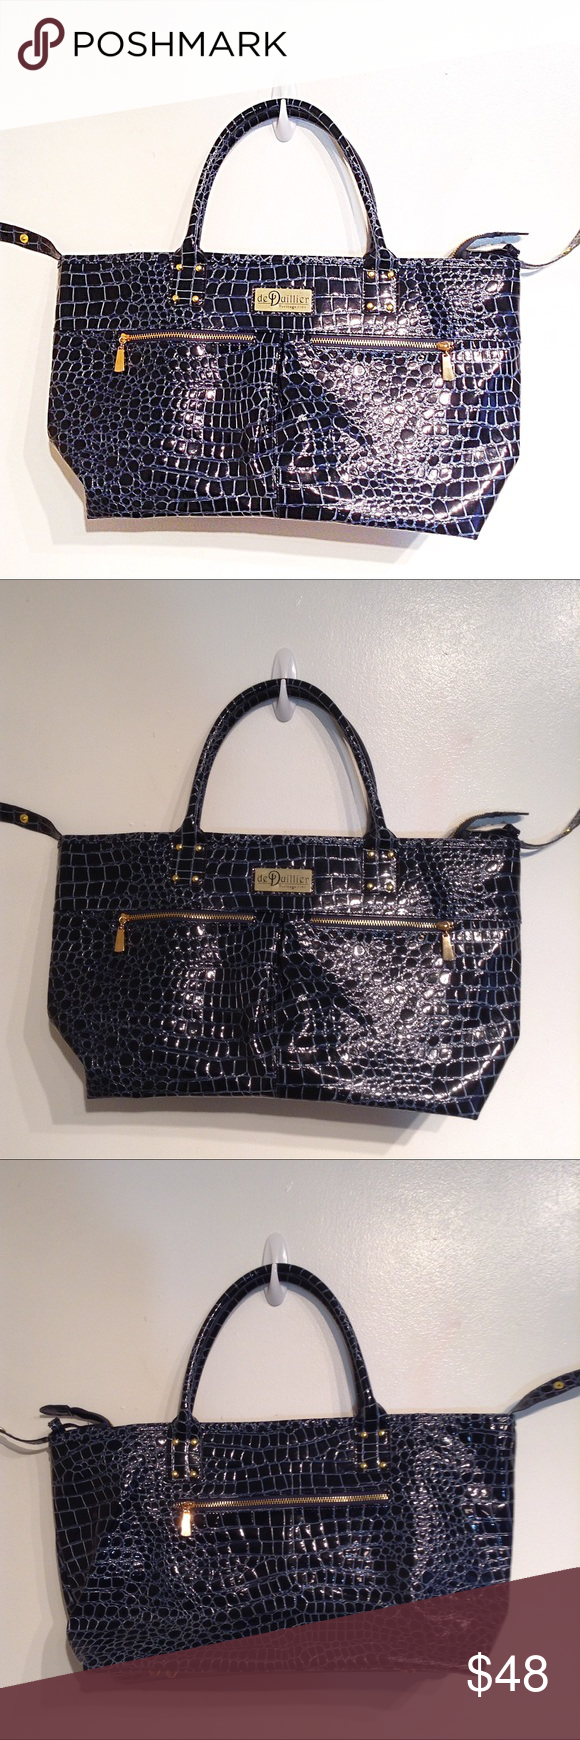 """DE DUILLIER HERITAGE 1704 Large Croc Skin Tote de Duillier Heritage 1704 patent faux leather croc/snakeskin textured tote bag. Huge and roomy. Zips shut. Zippered pockets on front. Would make a great large purse, diaper bag, weekend bag, or work/school tote. Measures 20"""" wide across the top and 11.5"""" tall. No modeling. Smoke free home. I do discount bundles. de Duillier Bags Totes"""